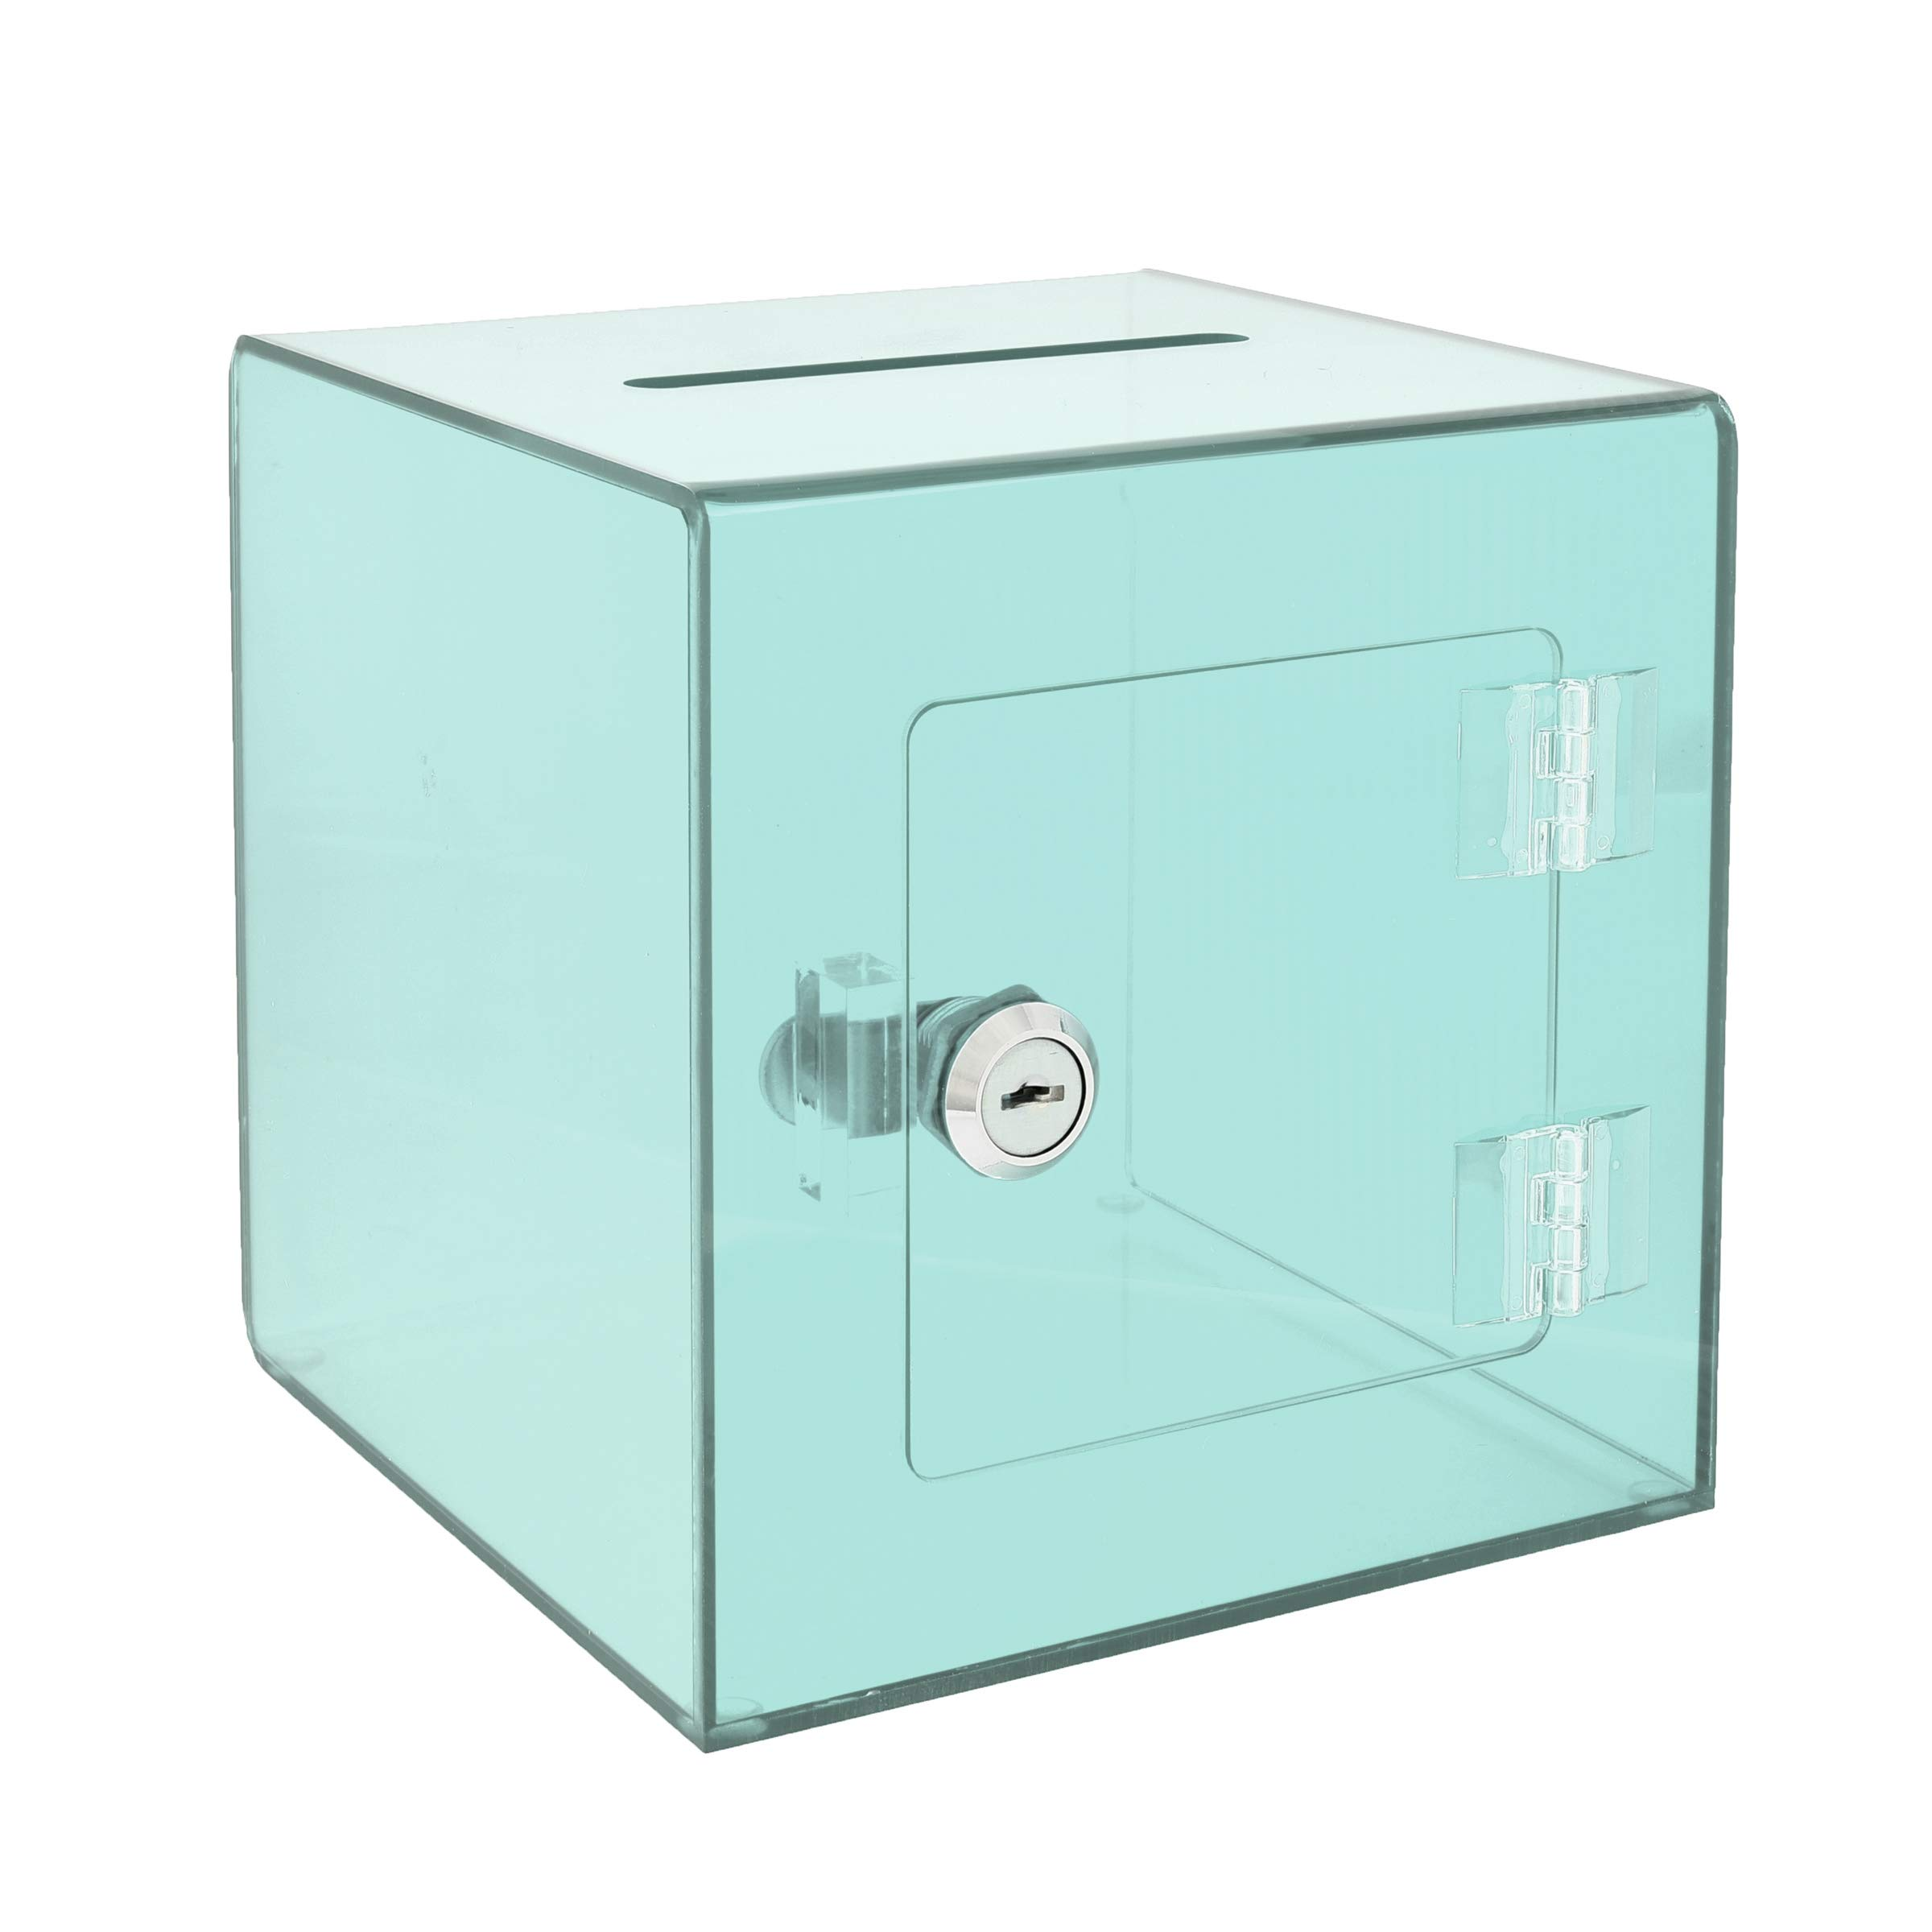 AdirOffice 6'' x 6'' Acrylic Ballot Box Donation Box with Easy Open Rear Door - Durable Acrylic Box with Lock - Ideal for Voting, Charity & Suggestion Collection - Crystal Green